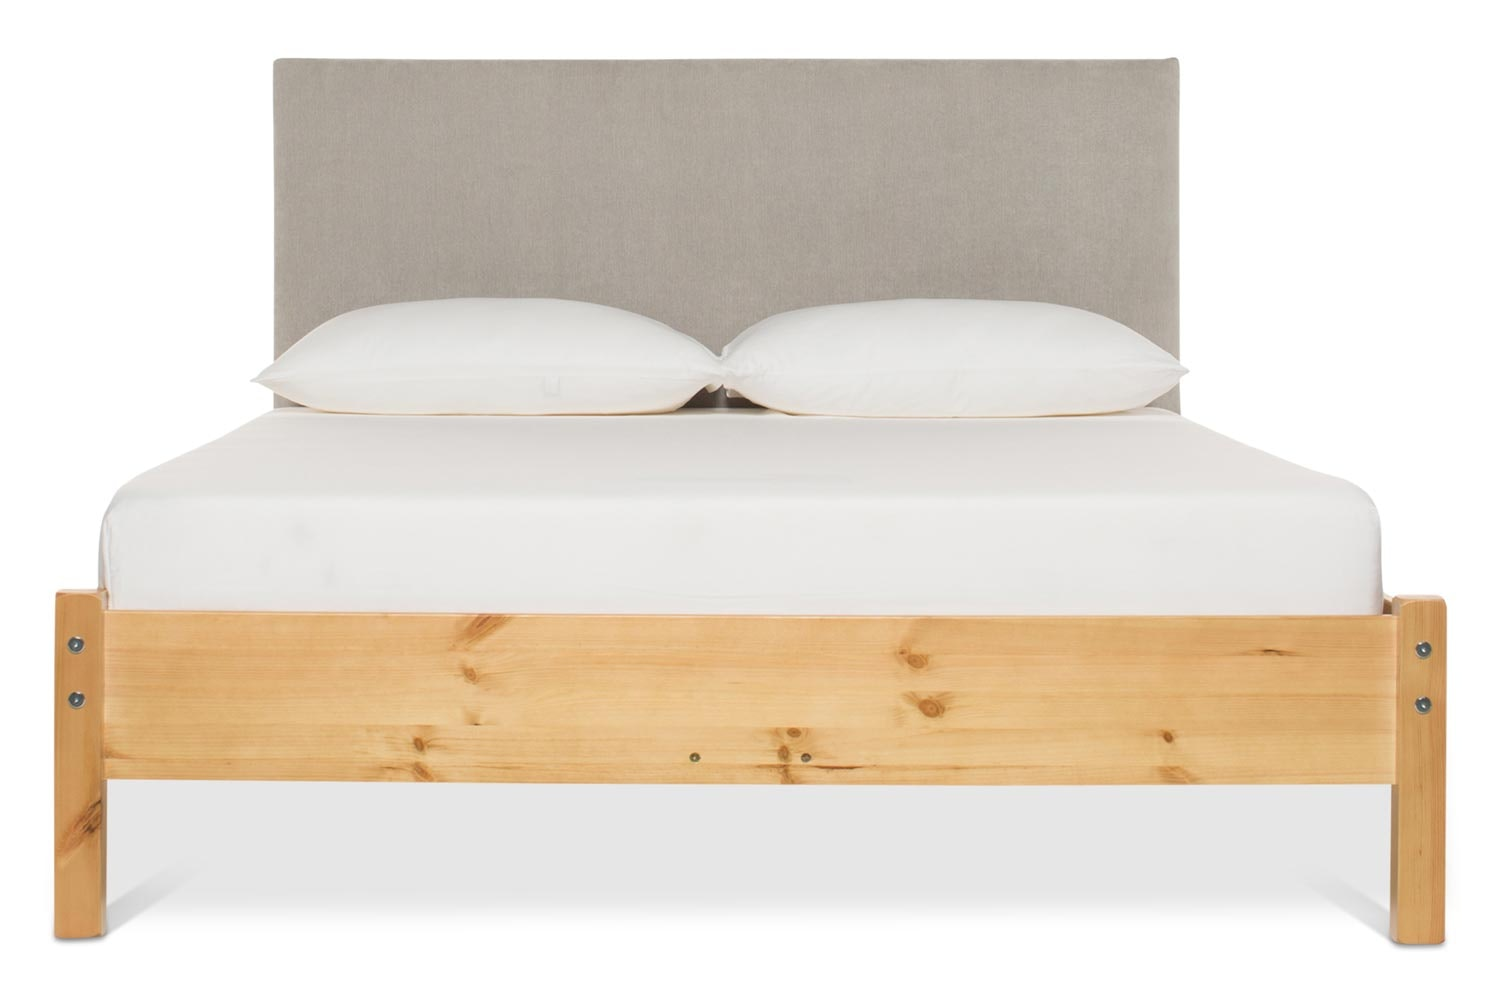 Emily Loft Natural Bed Frame | 6FT | Dylan Headboard Silver